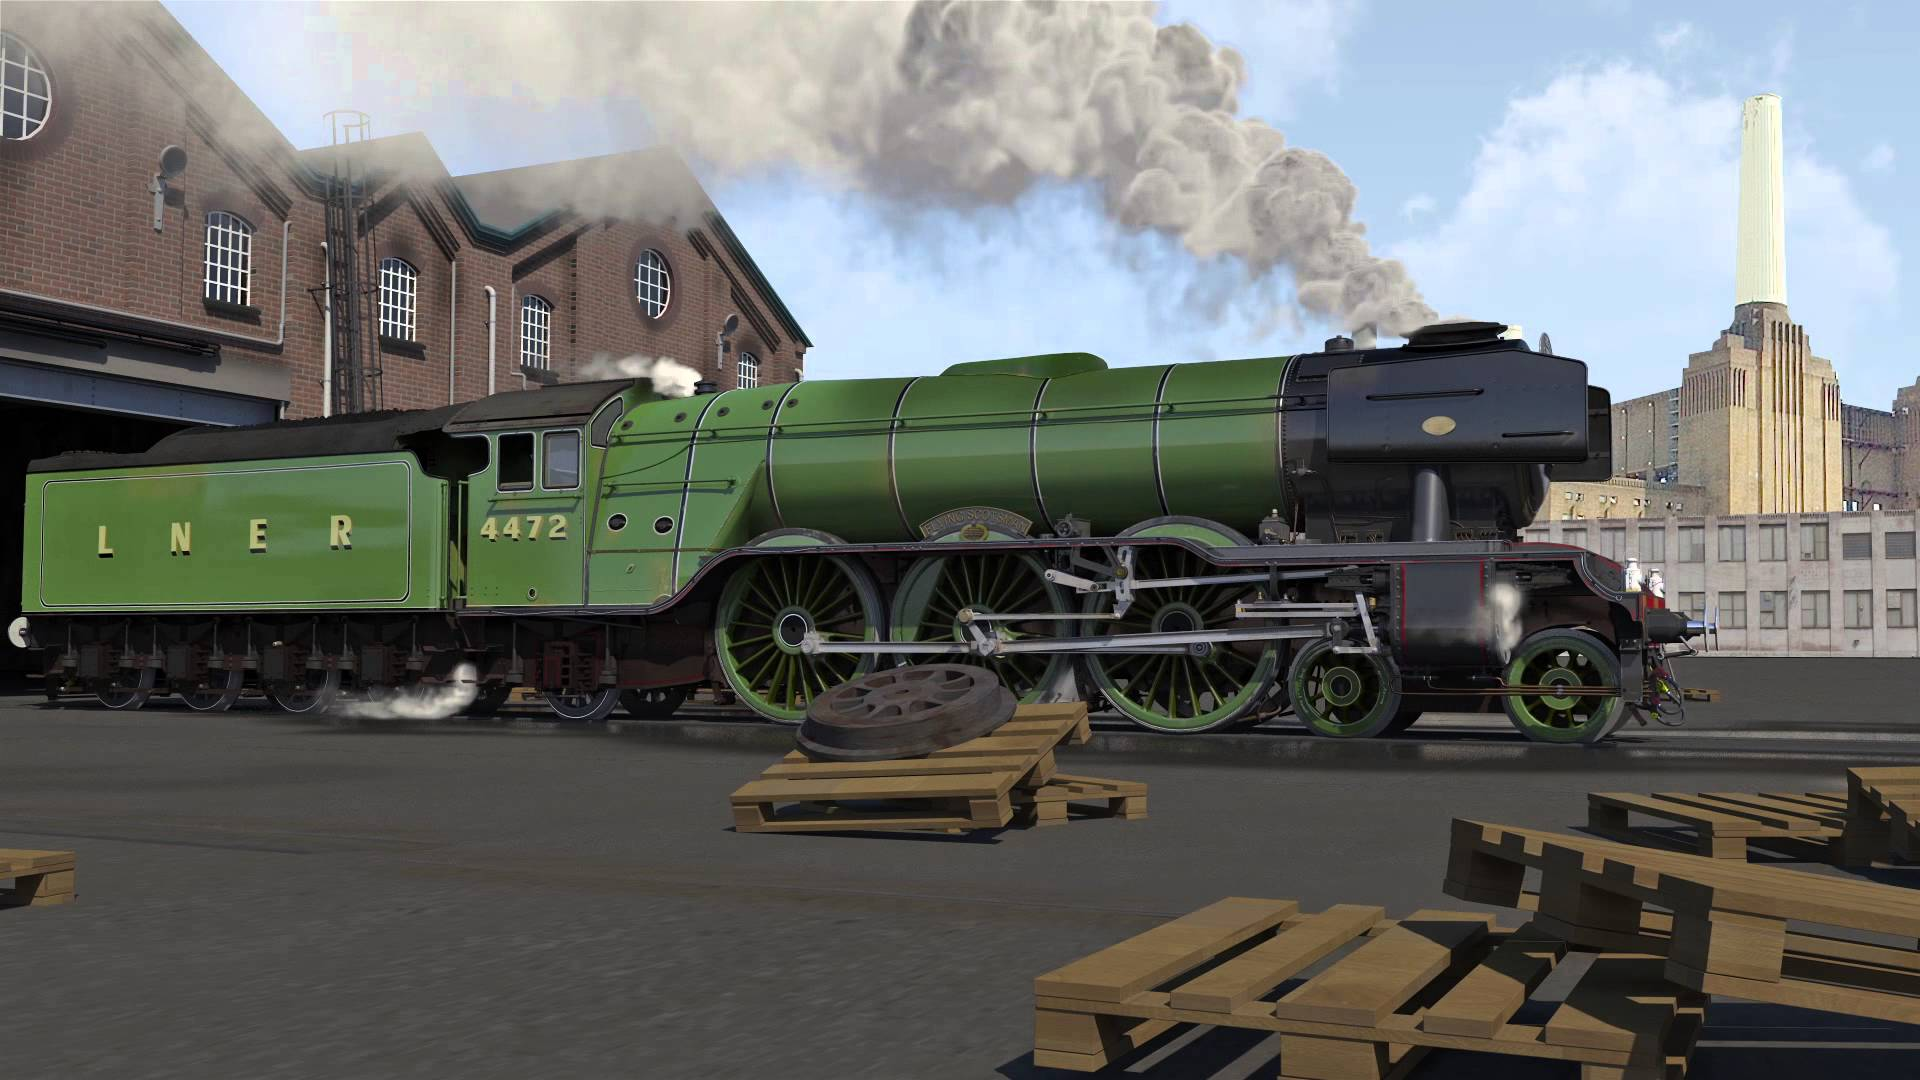 Products Flying Scotsman 1920x1080px 100 Quality HD Wallpapers 1920x1080